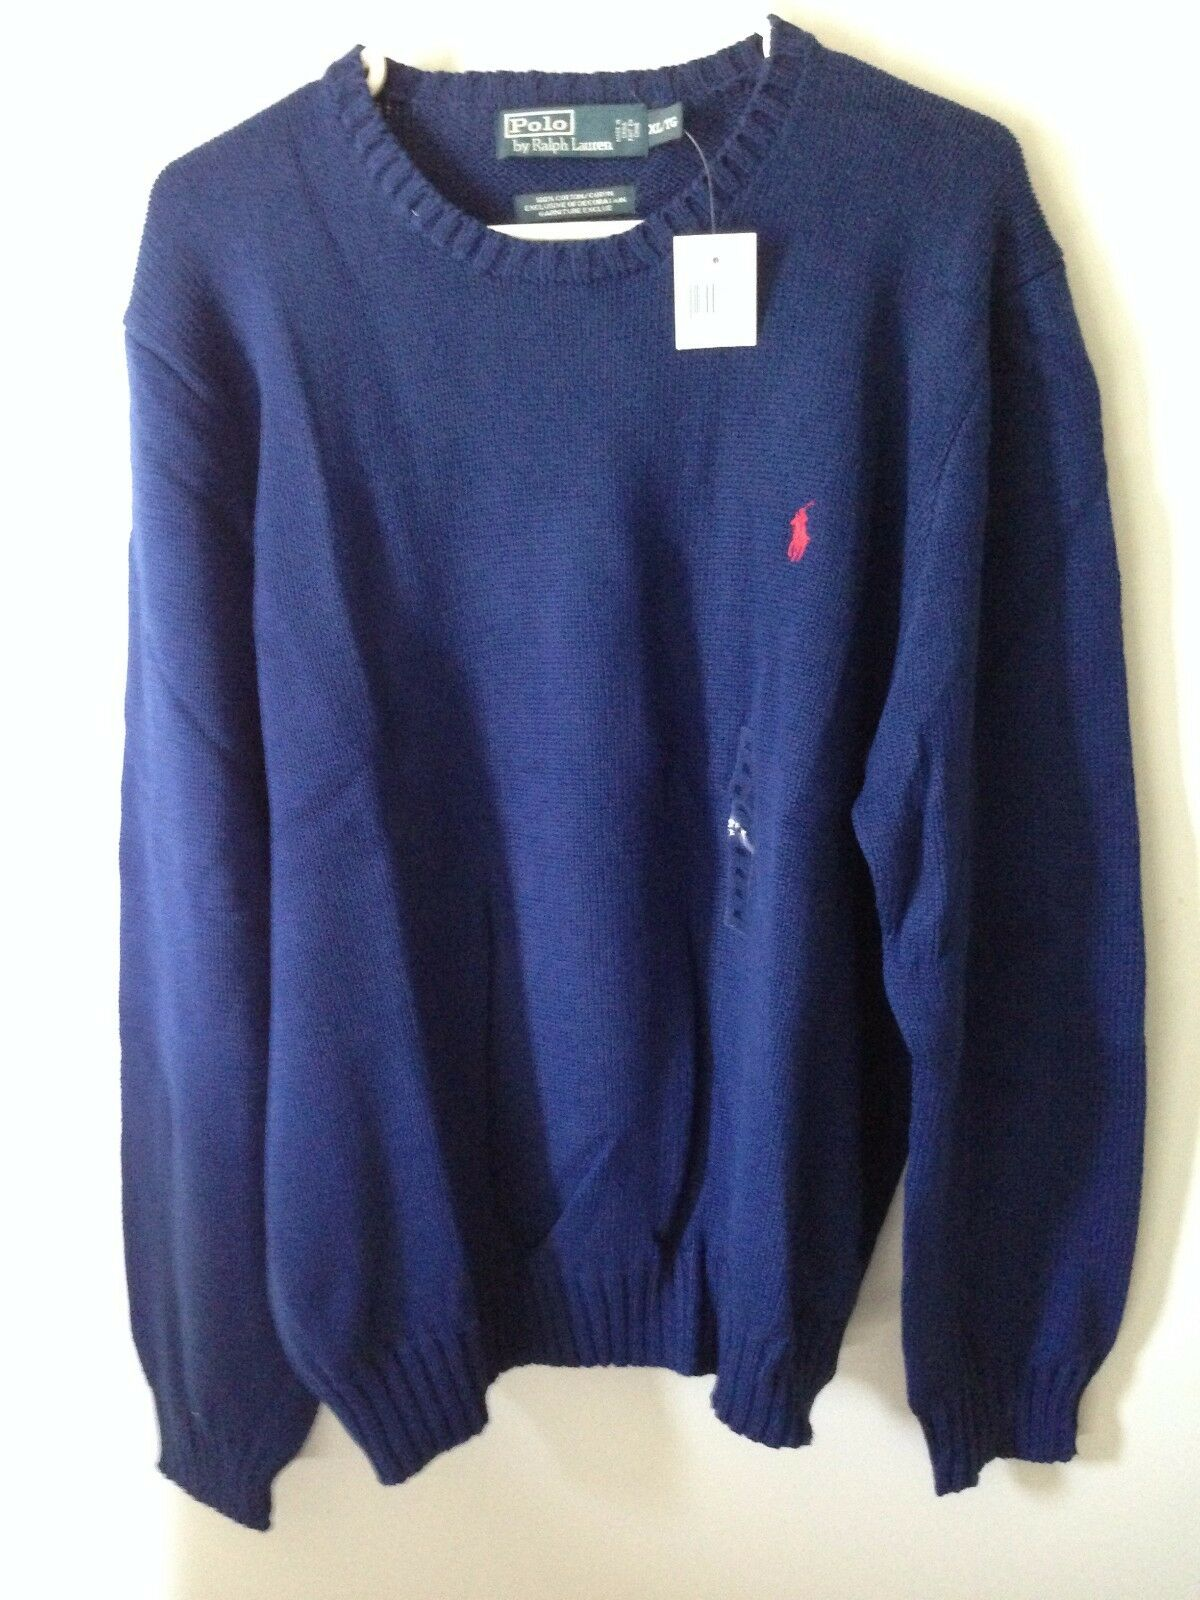 NEW WITH TAG POLO RALPH LAUREN Men's Sweater Size XL